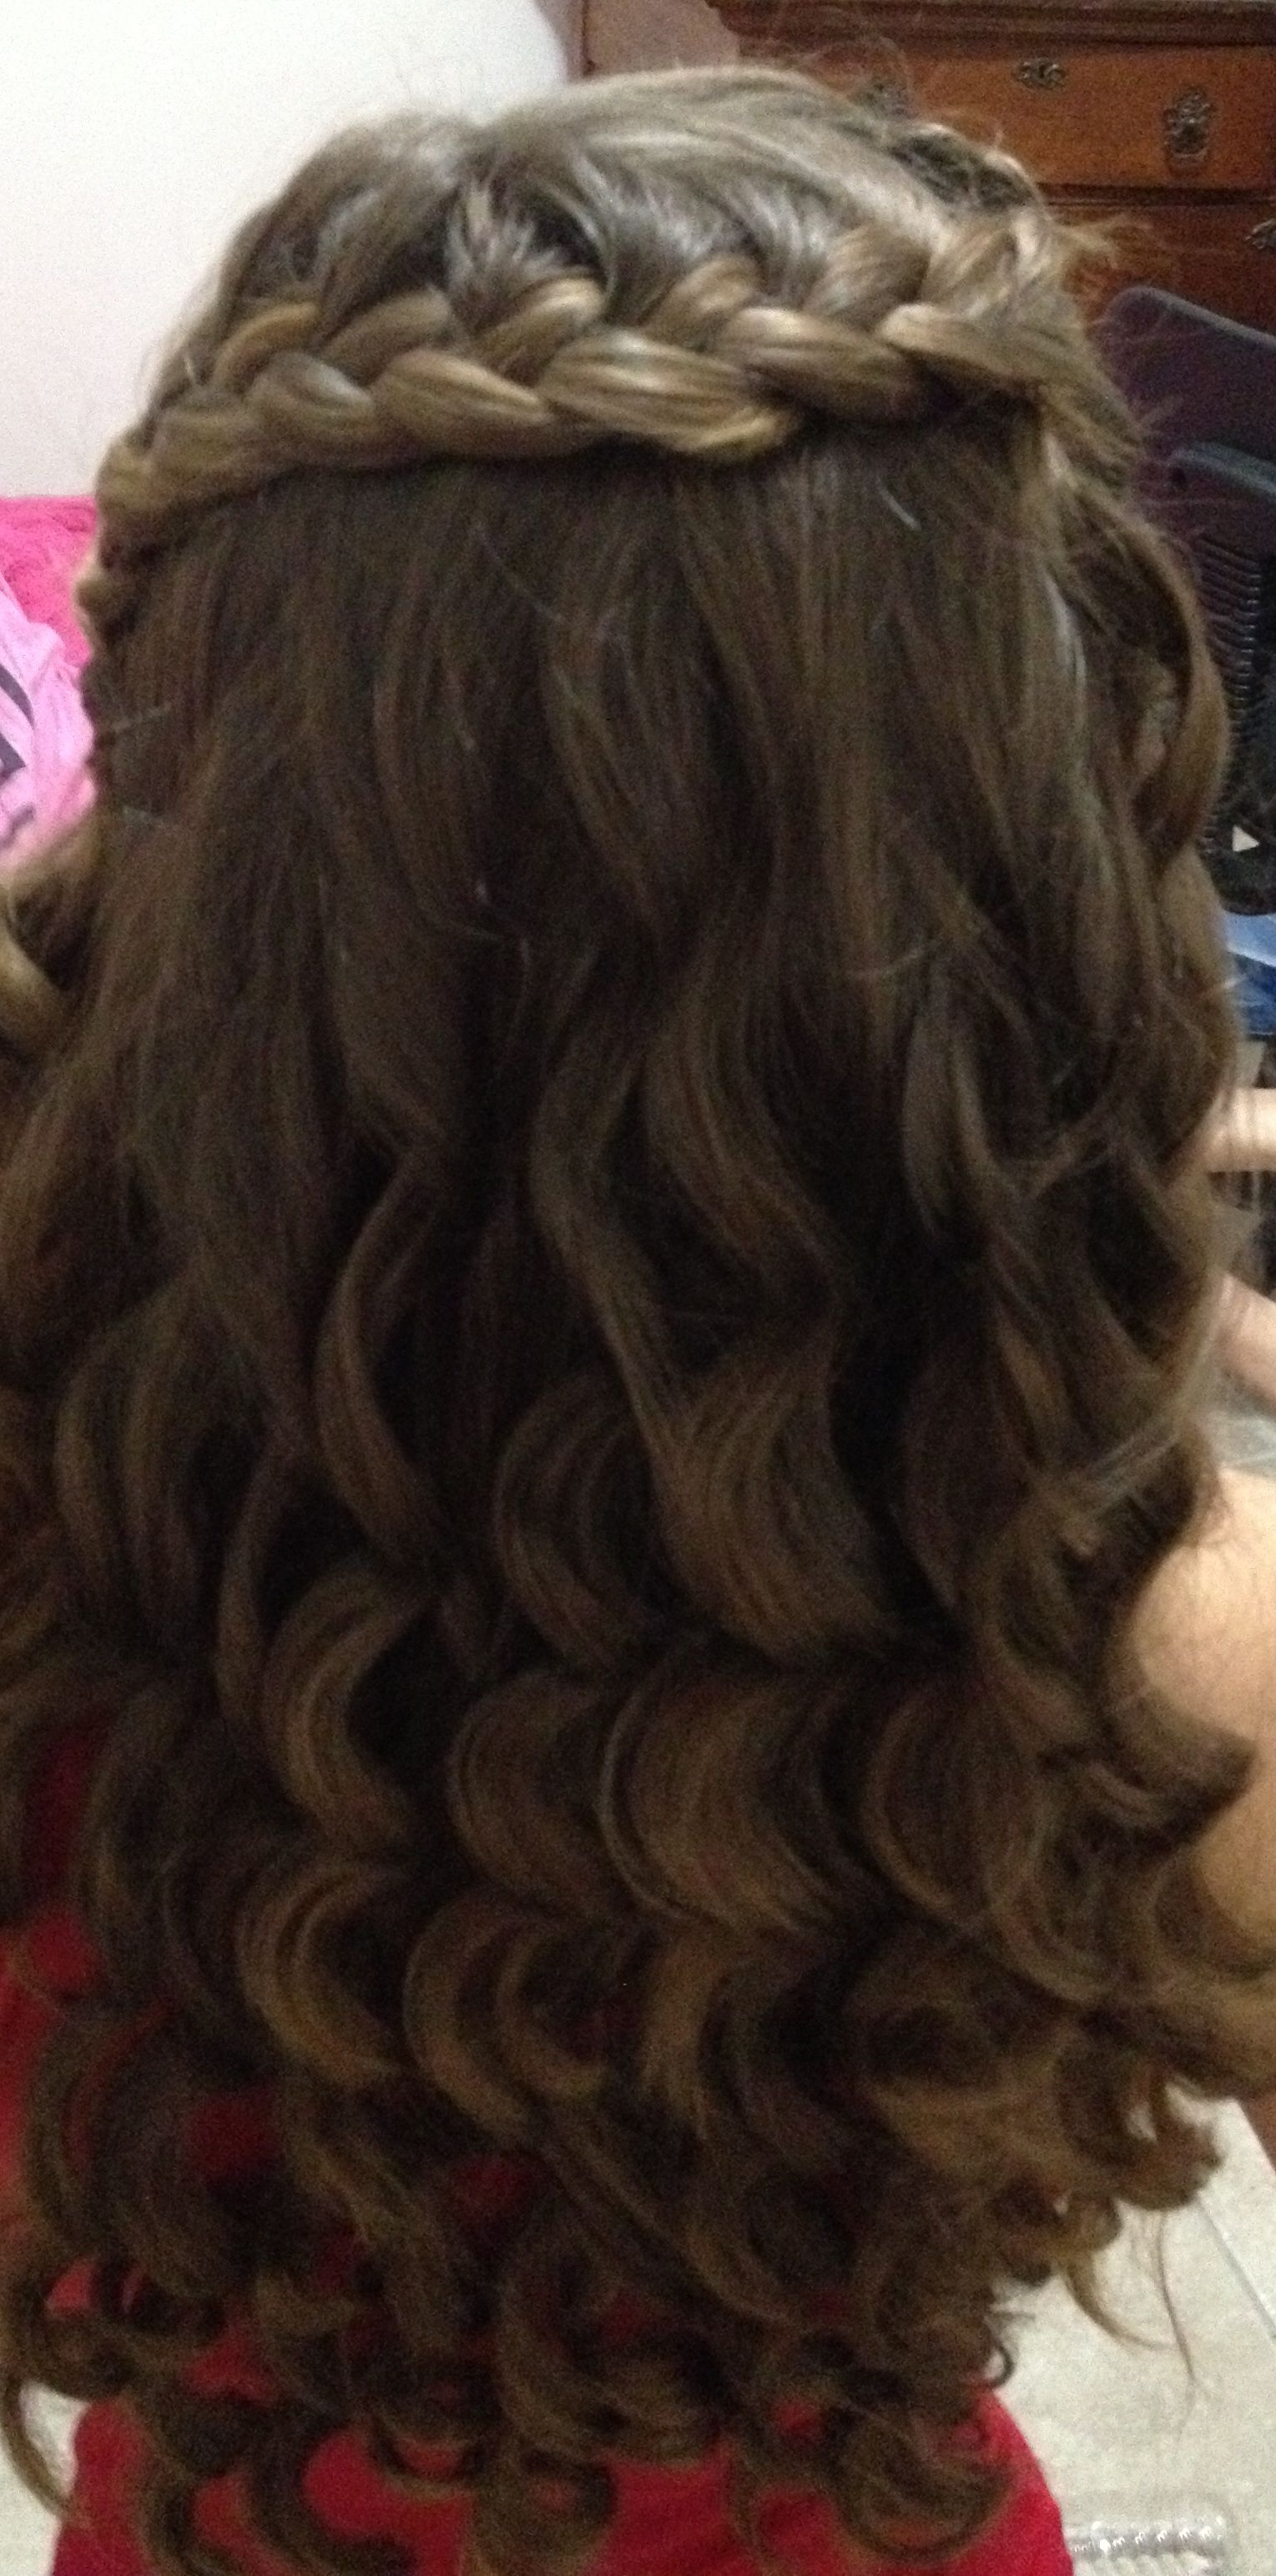 Prime French Braids Curly Hair And Braids On Pinterest Short Hairstyles For Black Women Fulllsitofus